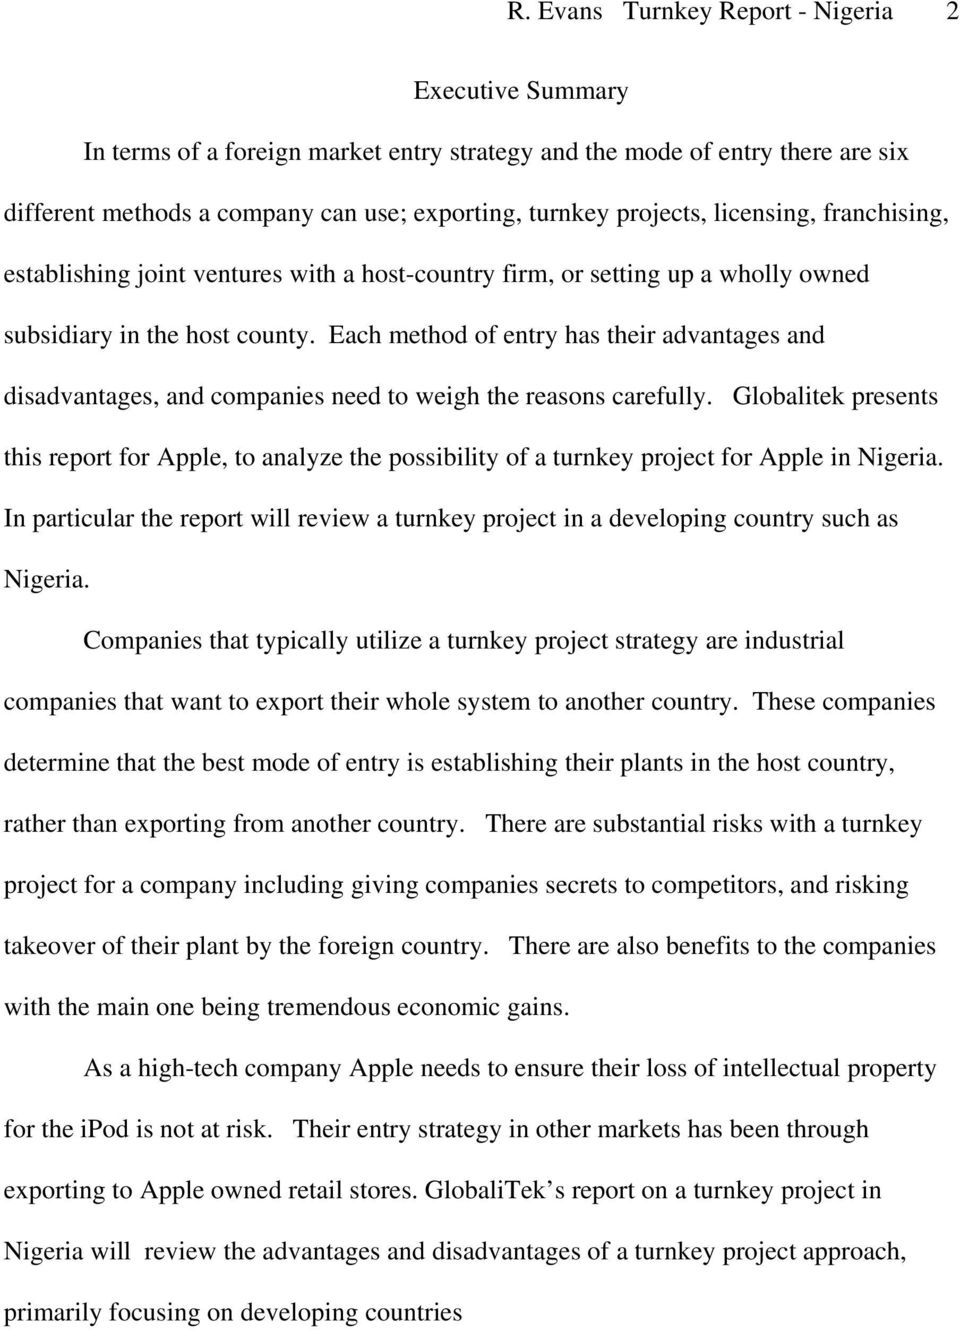 Entry Strategies  Report on a turnkey project for Apple s